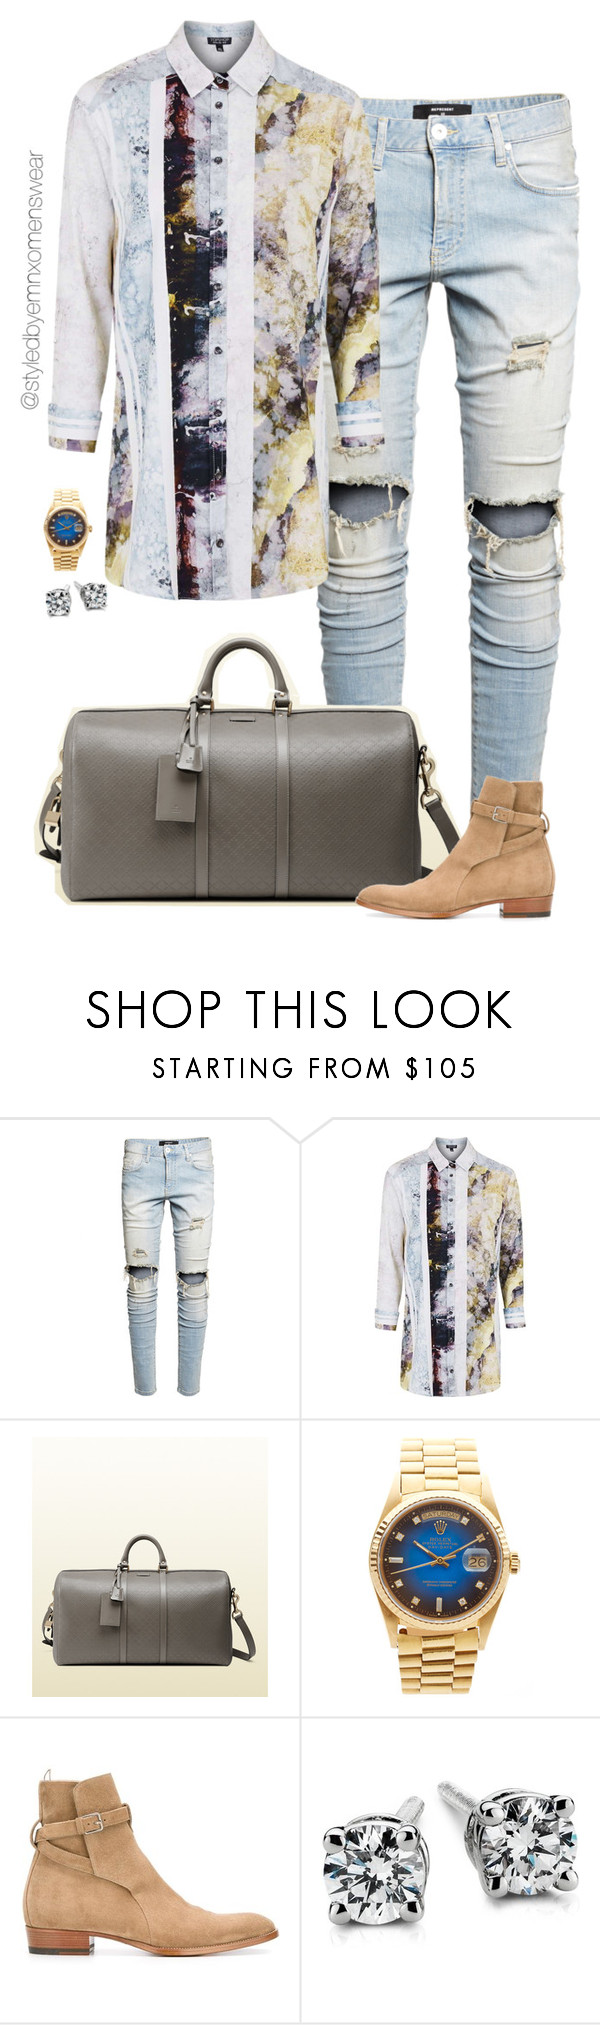 """""""I blow a bag a day"""" by efiaeemnxo ❤ liked on Polyvore featuring Topshop, Gucci, Rolex, Yves Saint Laurent, Blue Nile, men's fashion, menswear, mens, MensFashion and sbemnxo"""